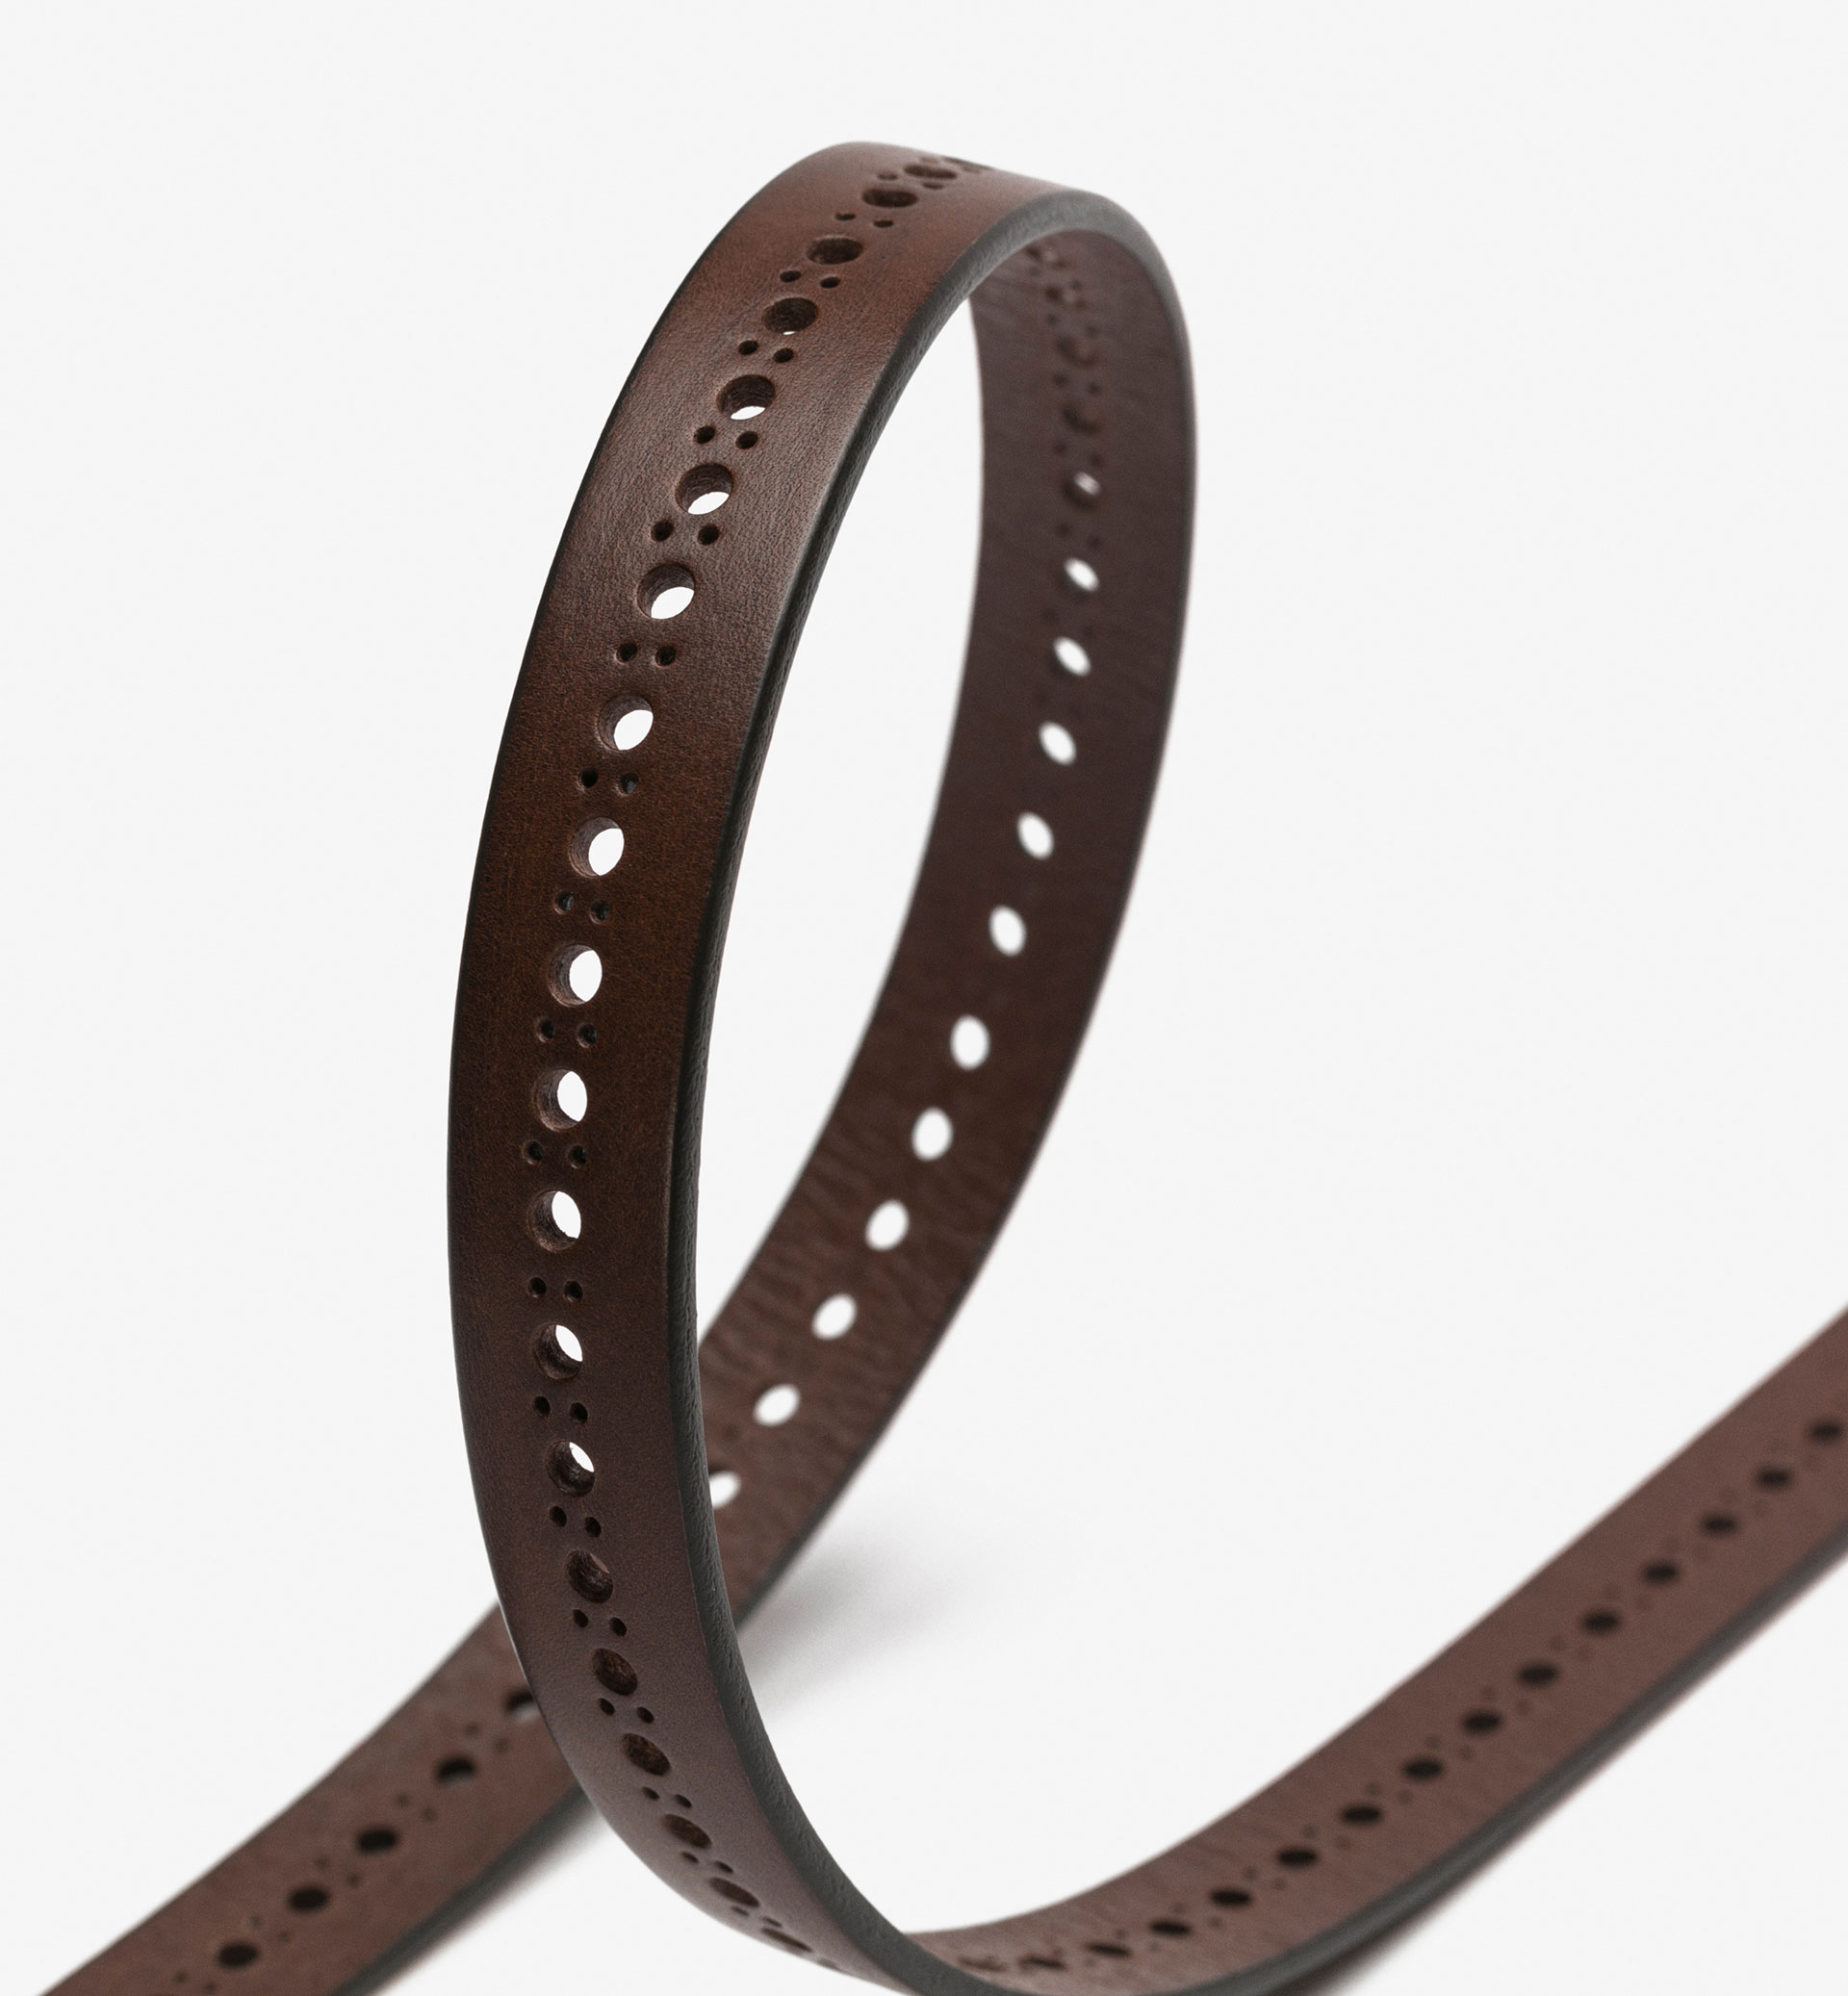 BELT WITH CIRCULAR BROGUEING